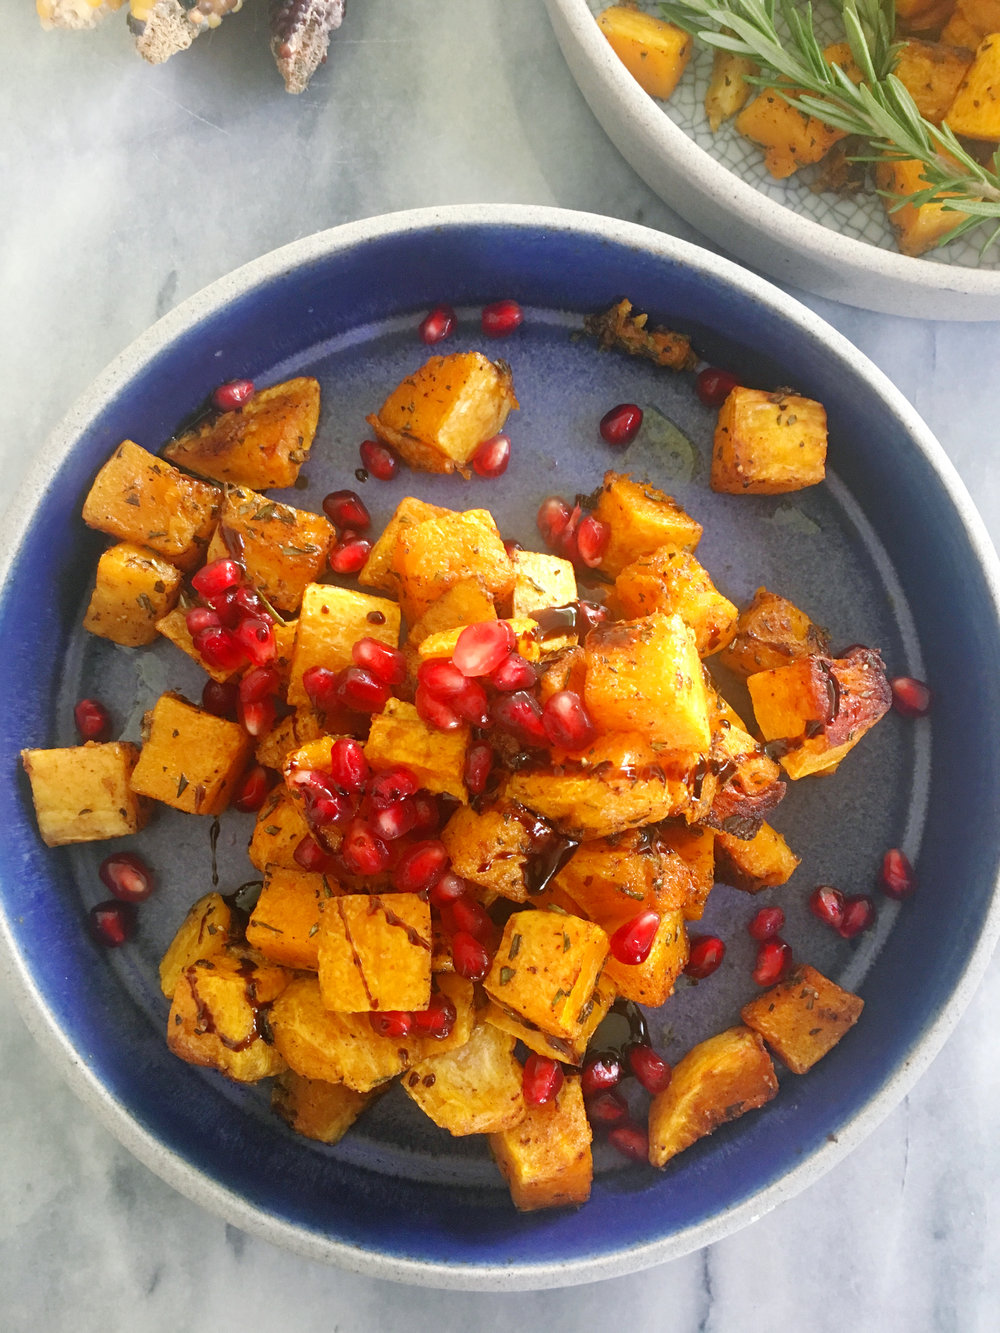 SWEET: Roasted butternut squash baked with fresh rosemary and pumpkin pie spice. Topped with seeded pomegranate and aged balsamic vinegar.